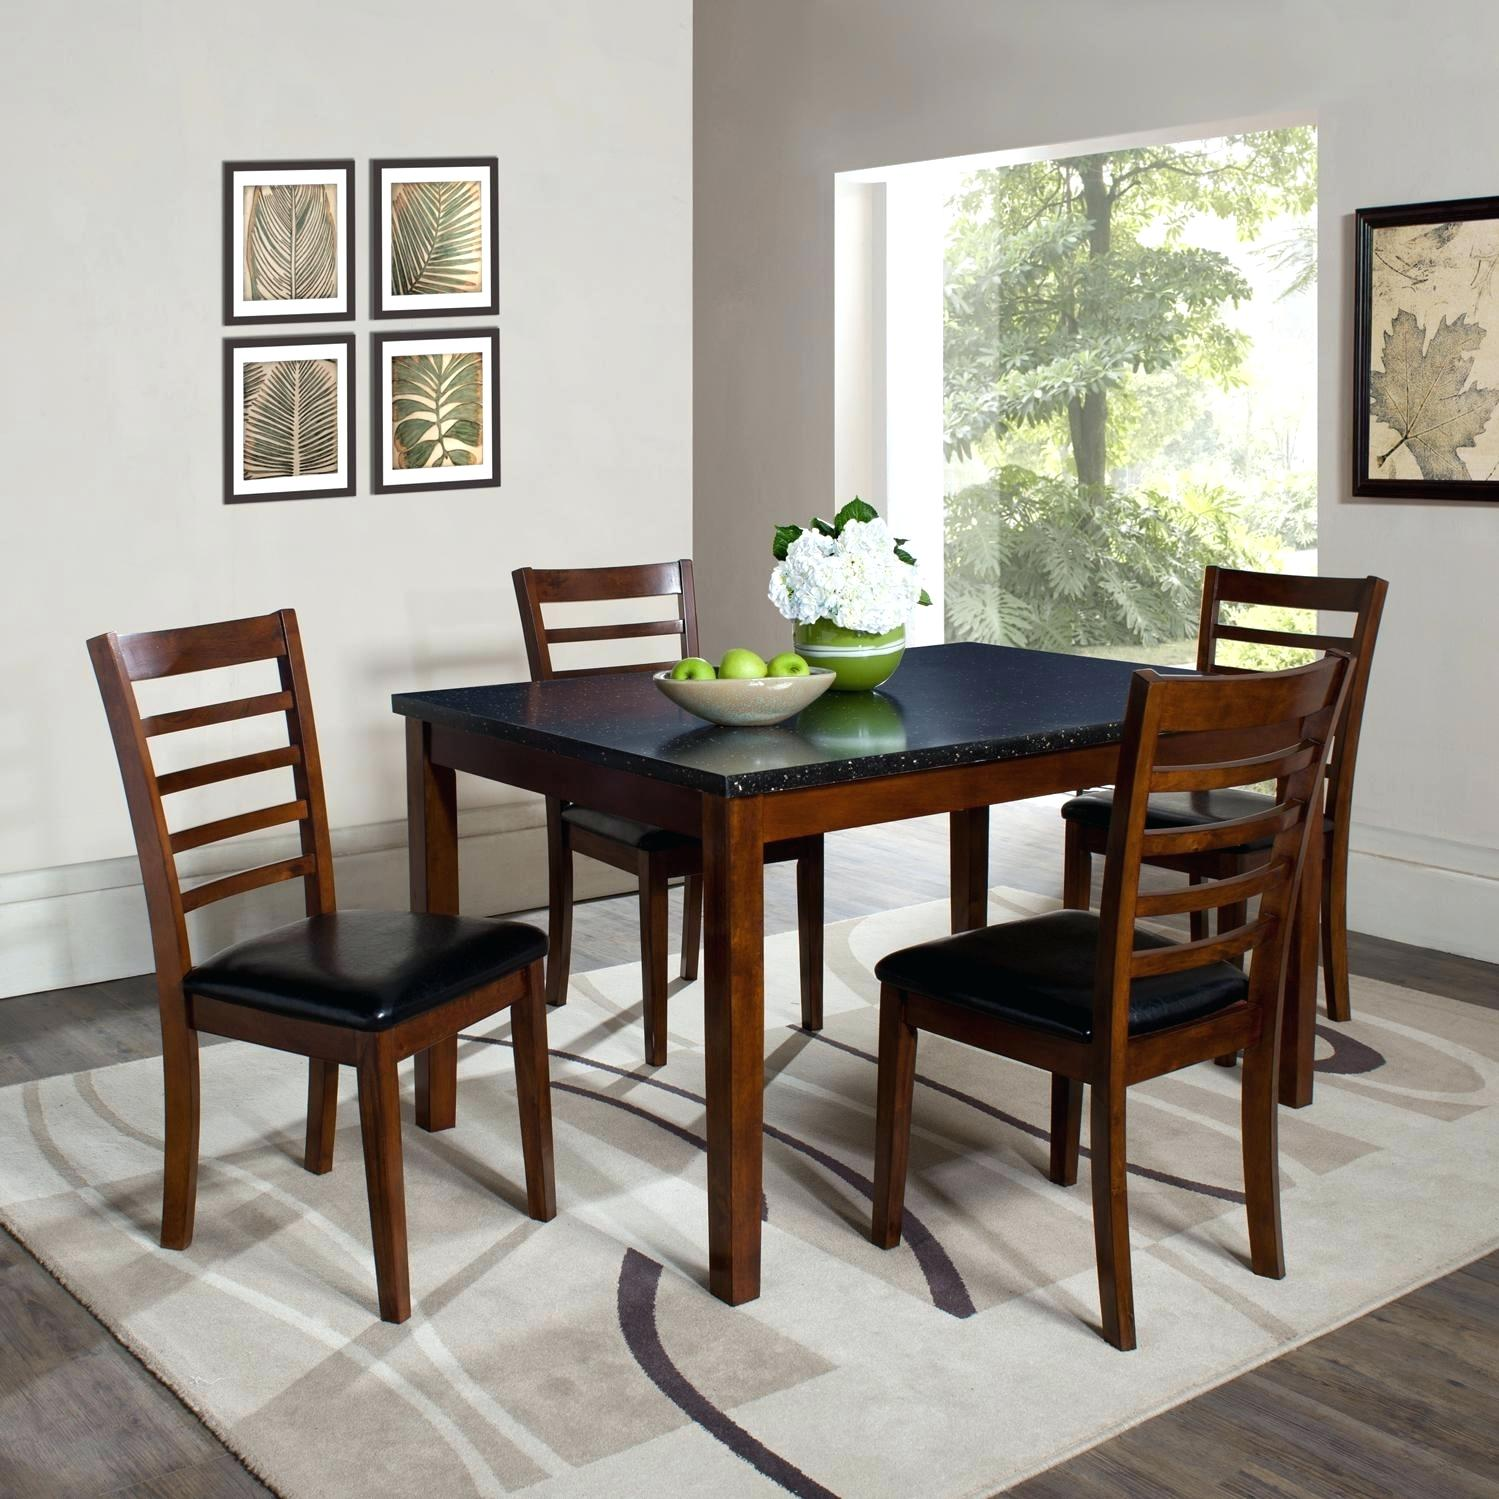 round dining table granite photo - 8